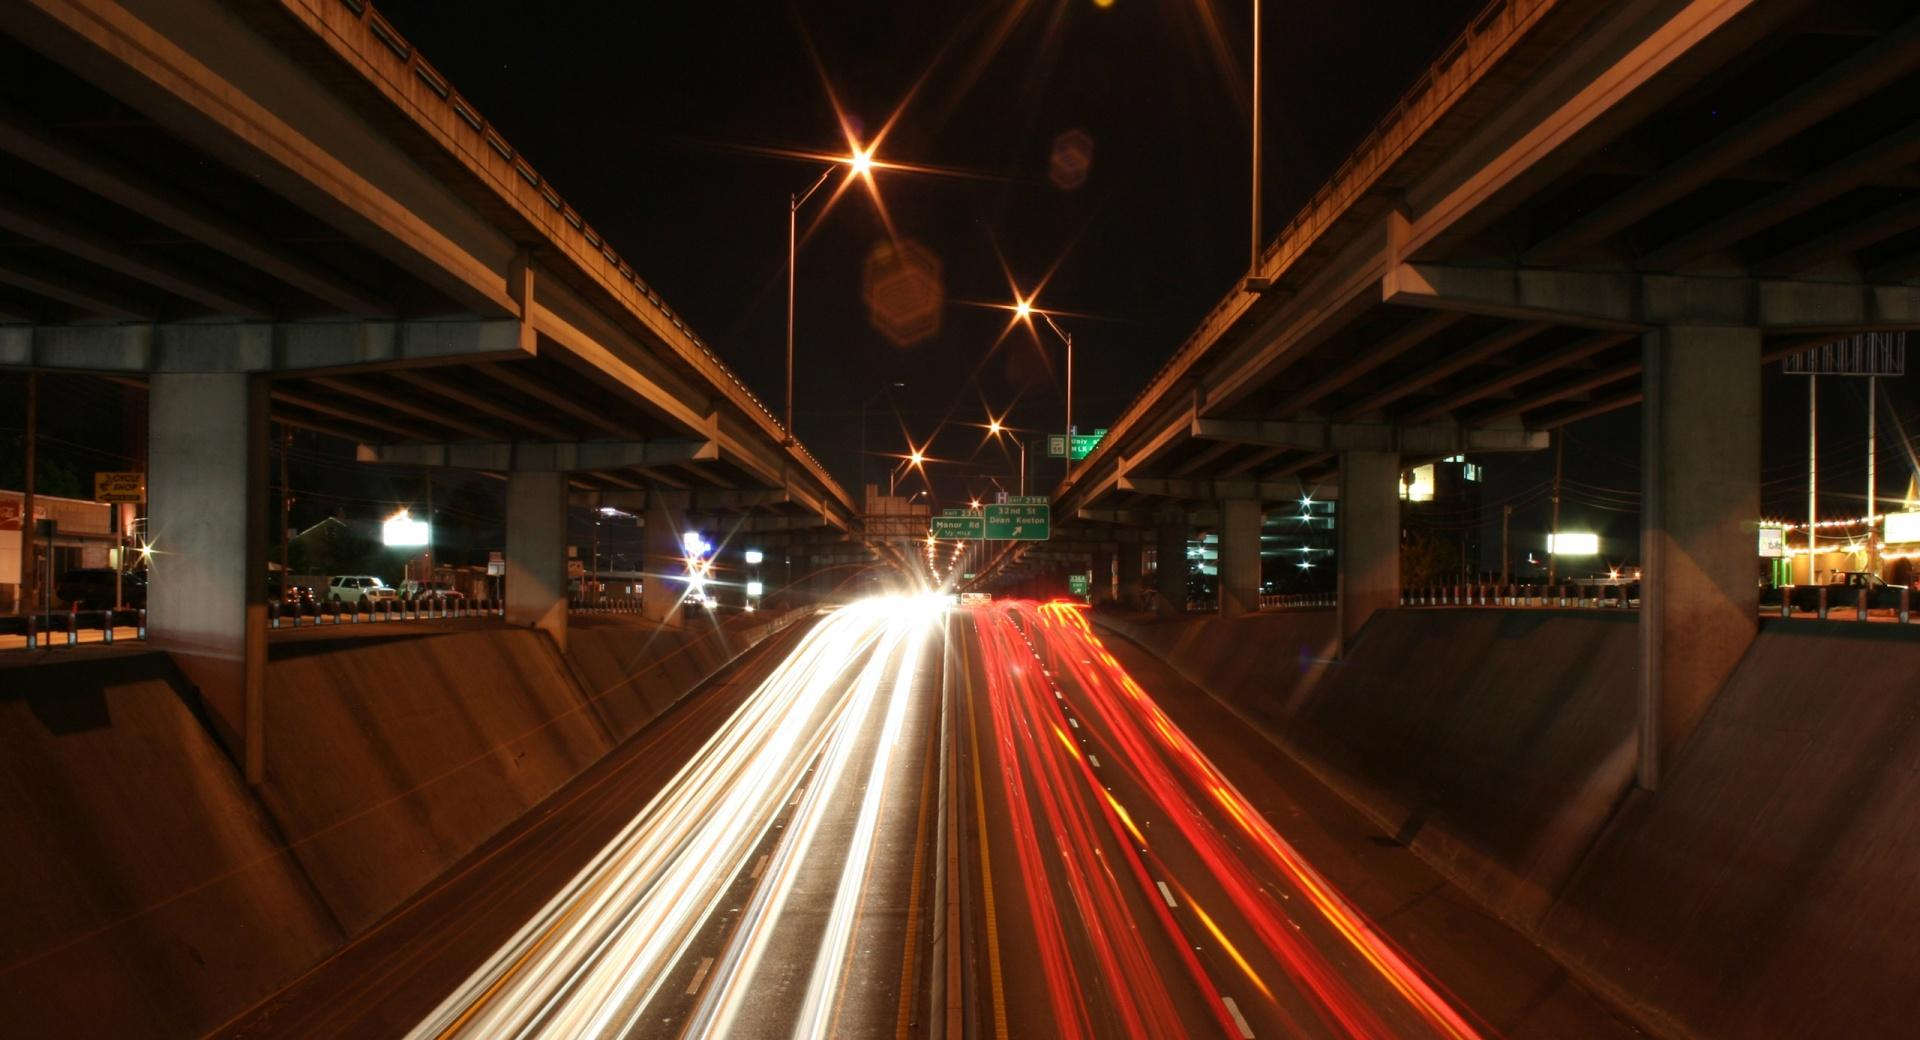 Highways At Night wallpapers HD quality